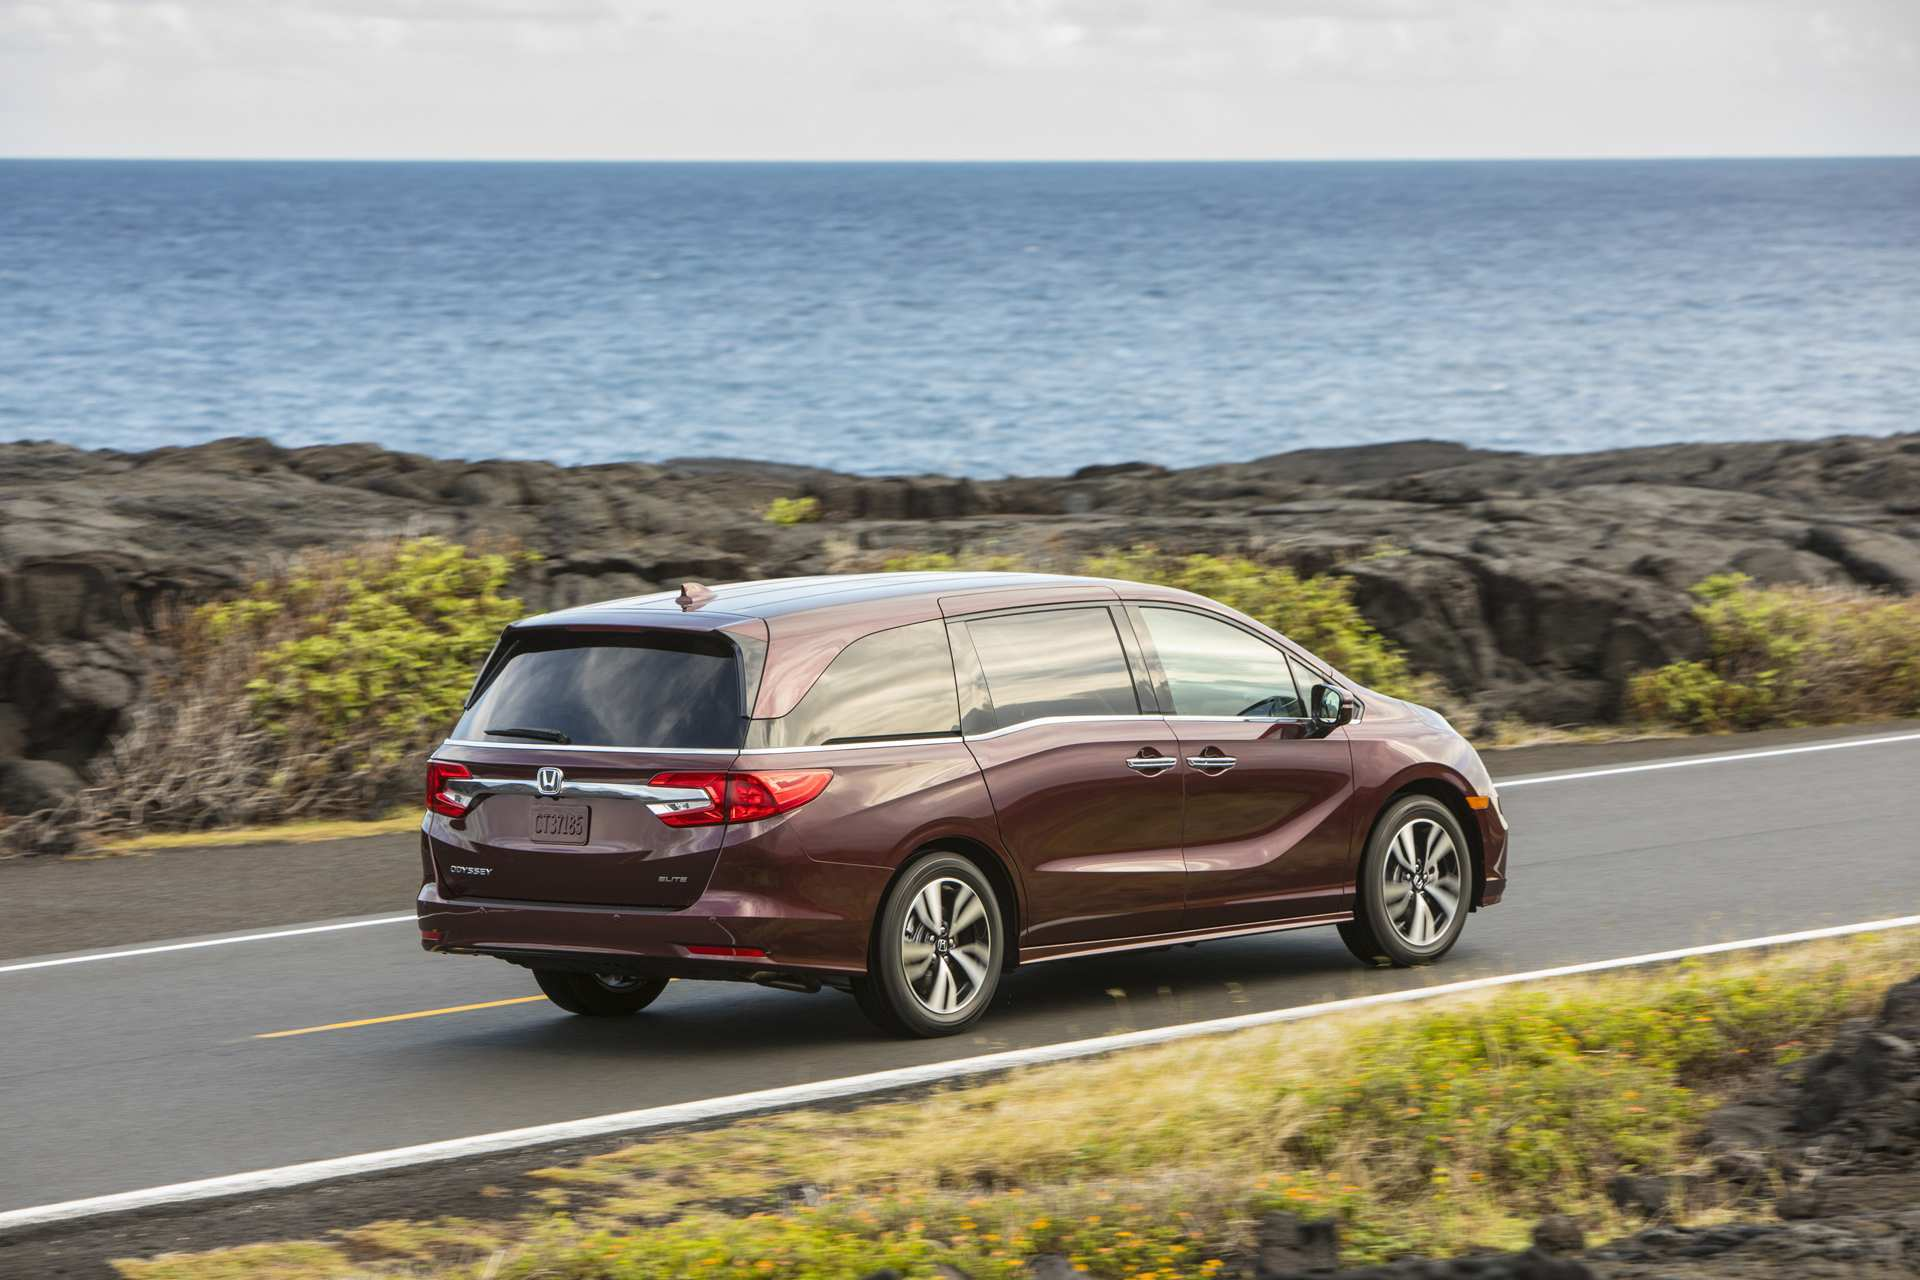 65 All New When Will 2020 Honda Odyssey Come Out Interior